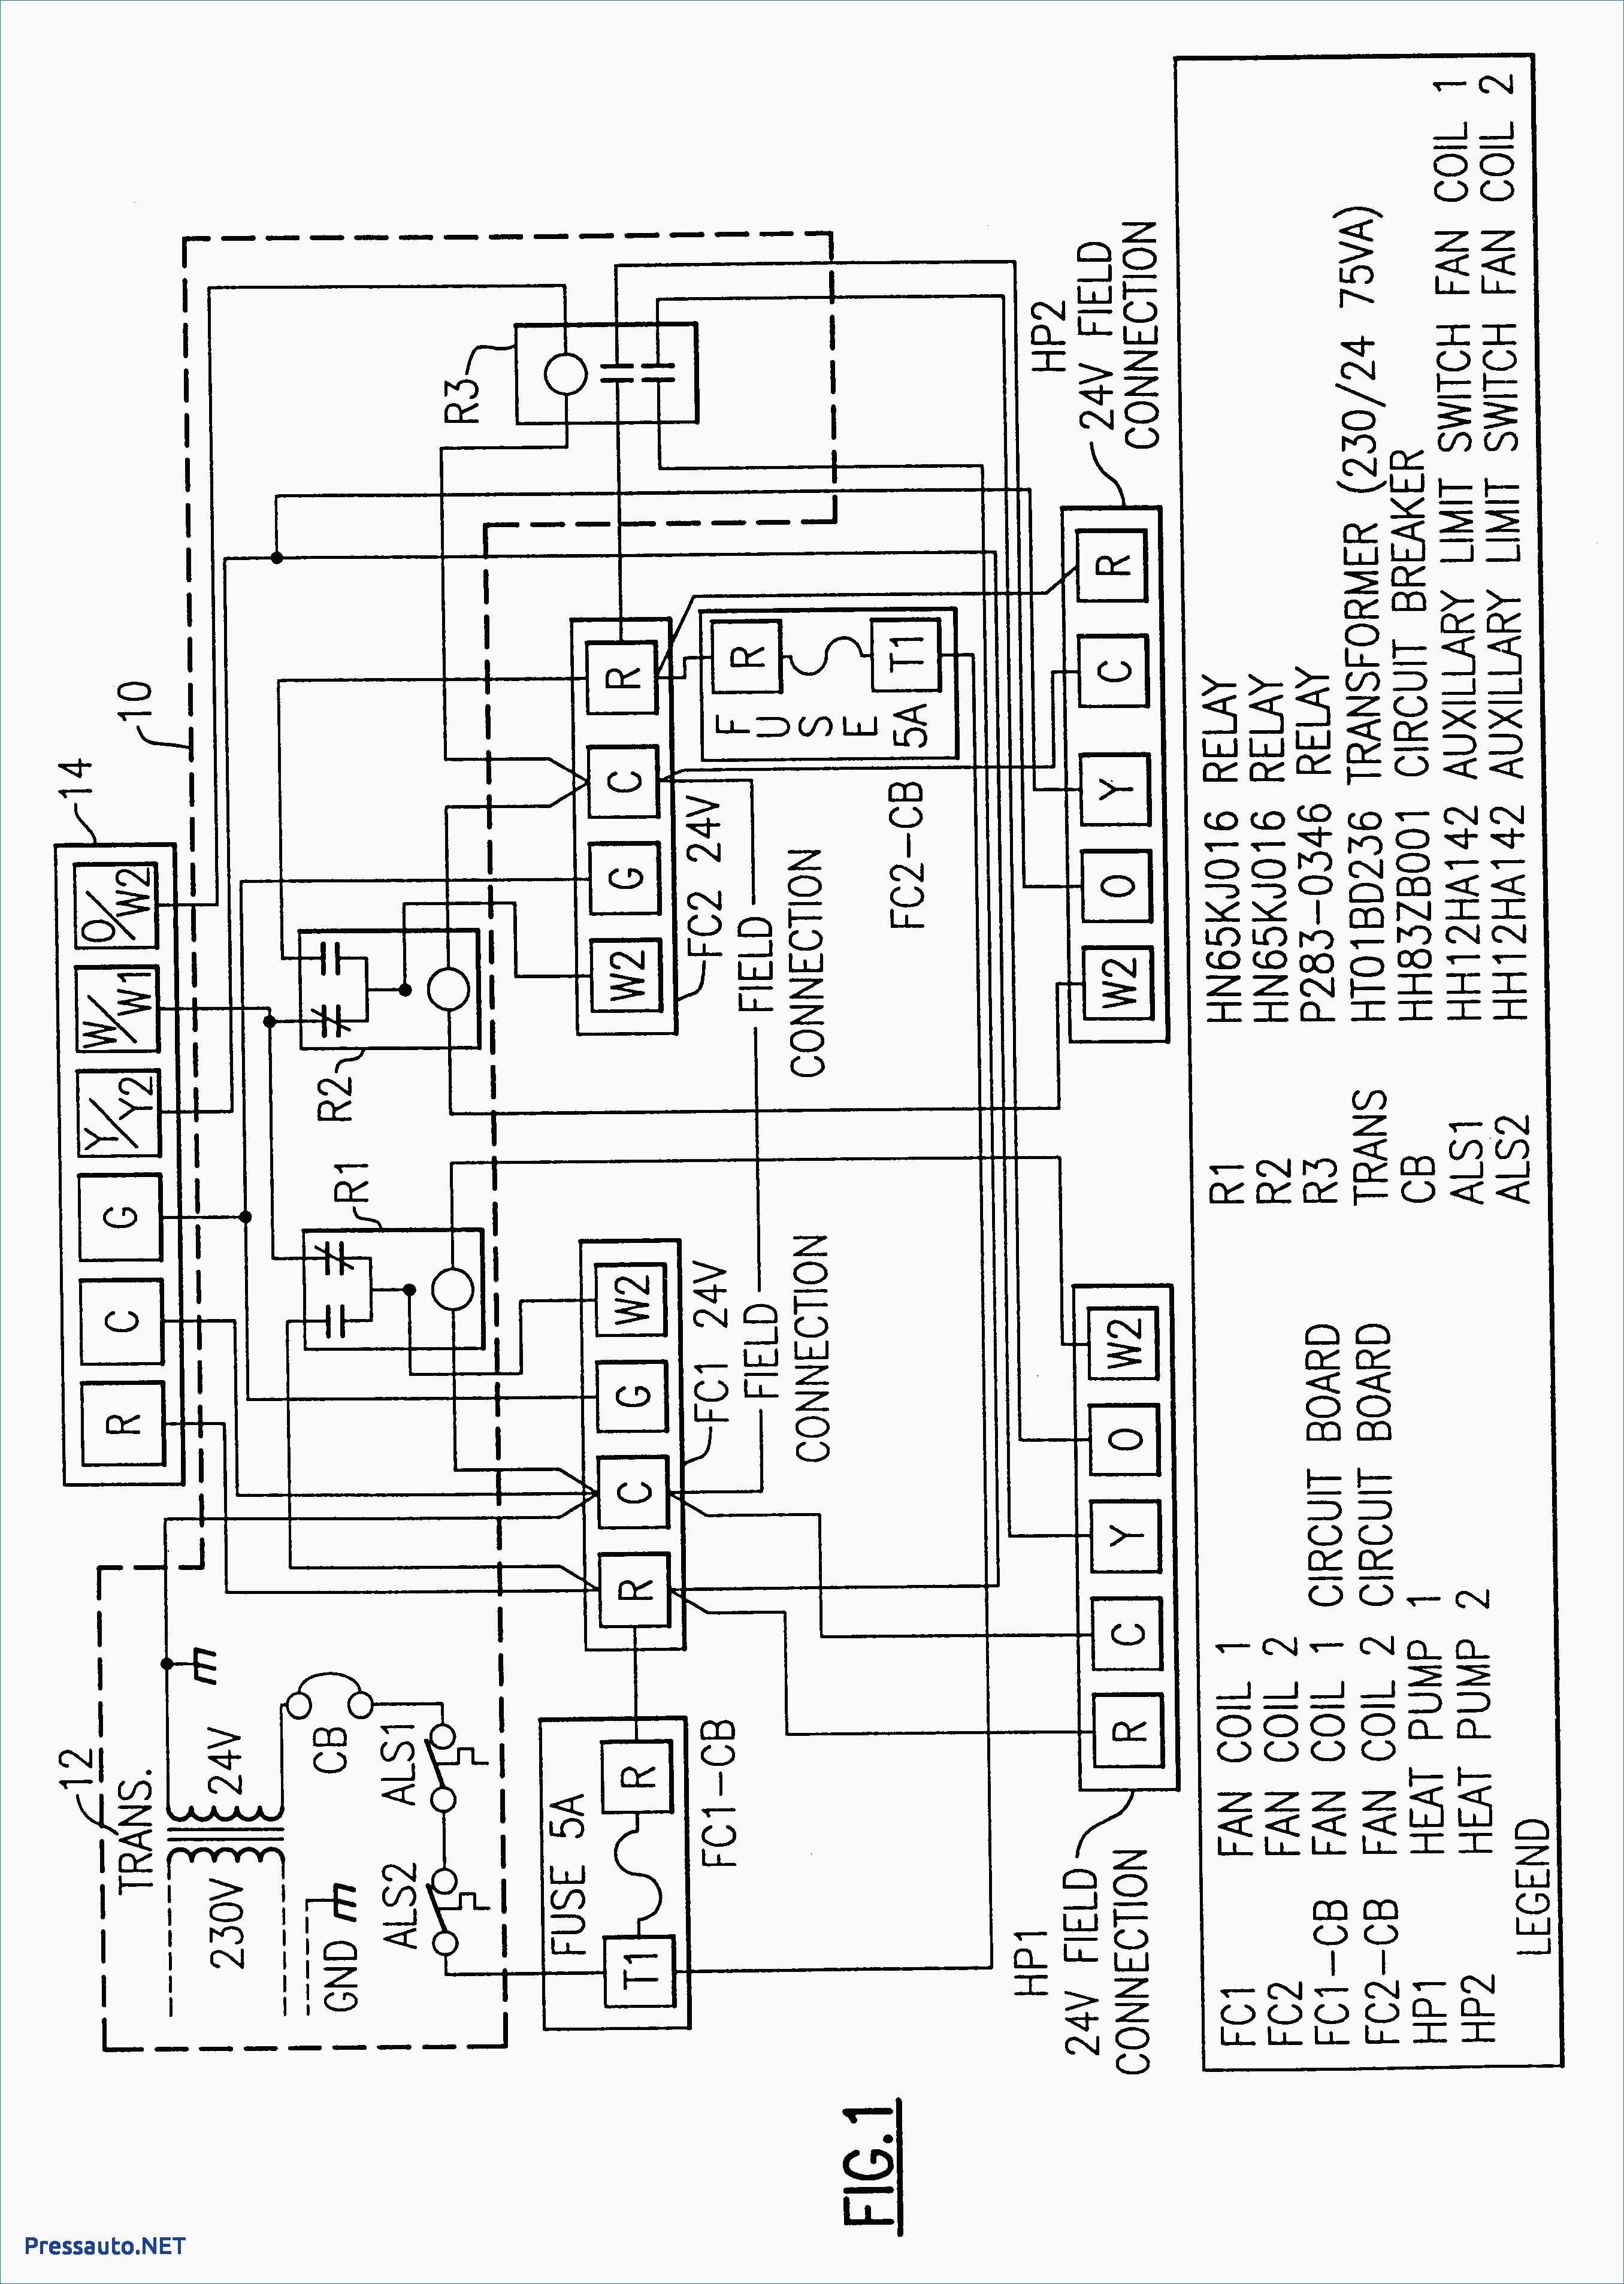 update honeywell actuator wiring diagrams